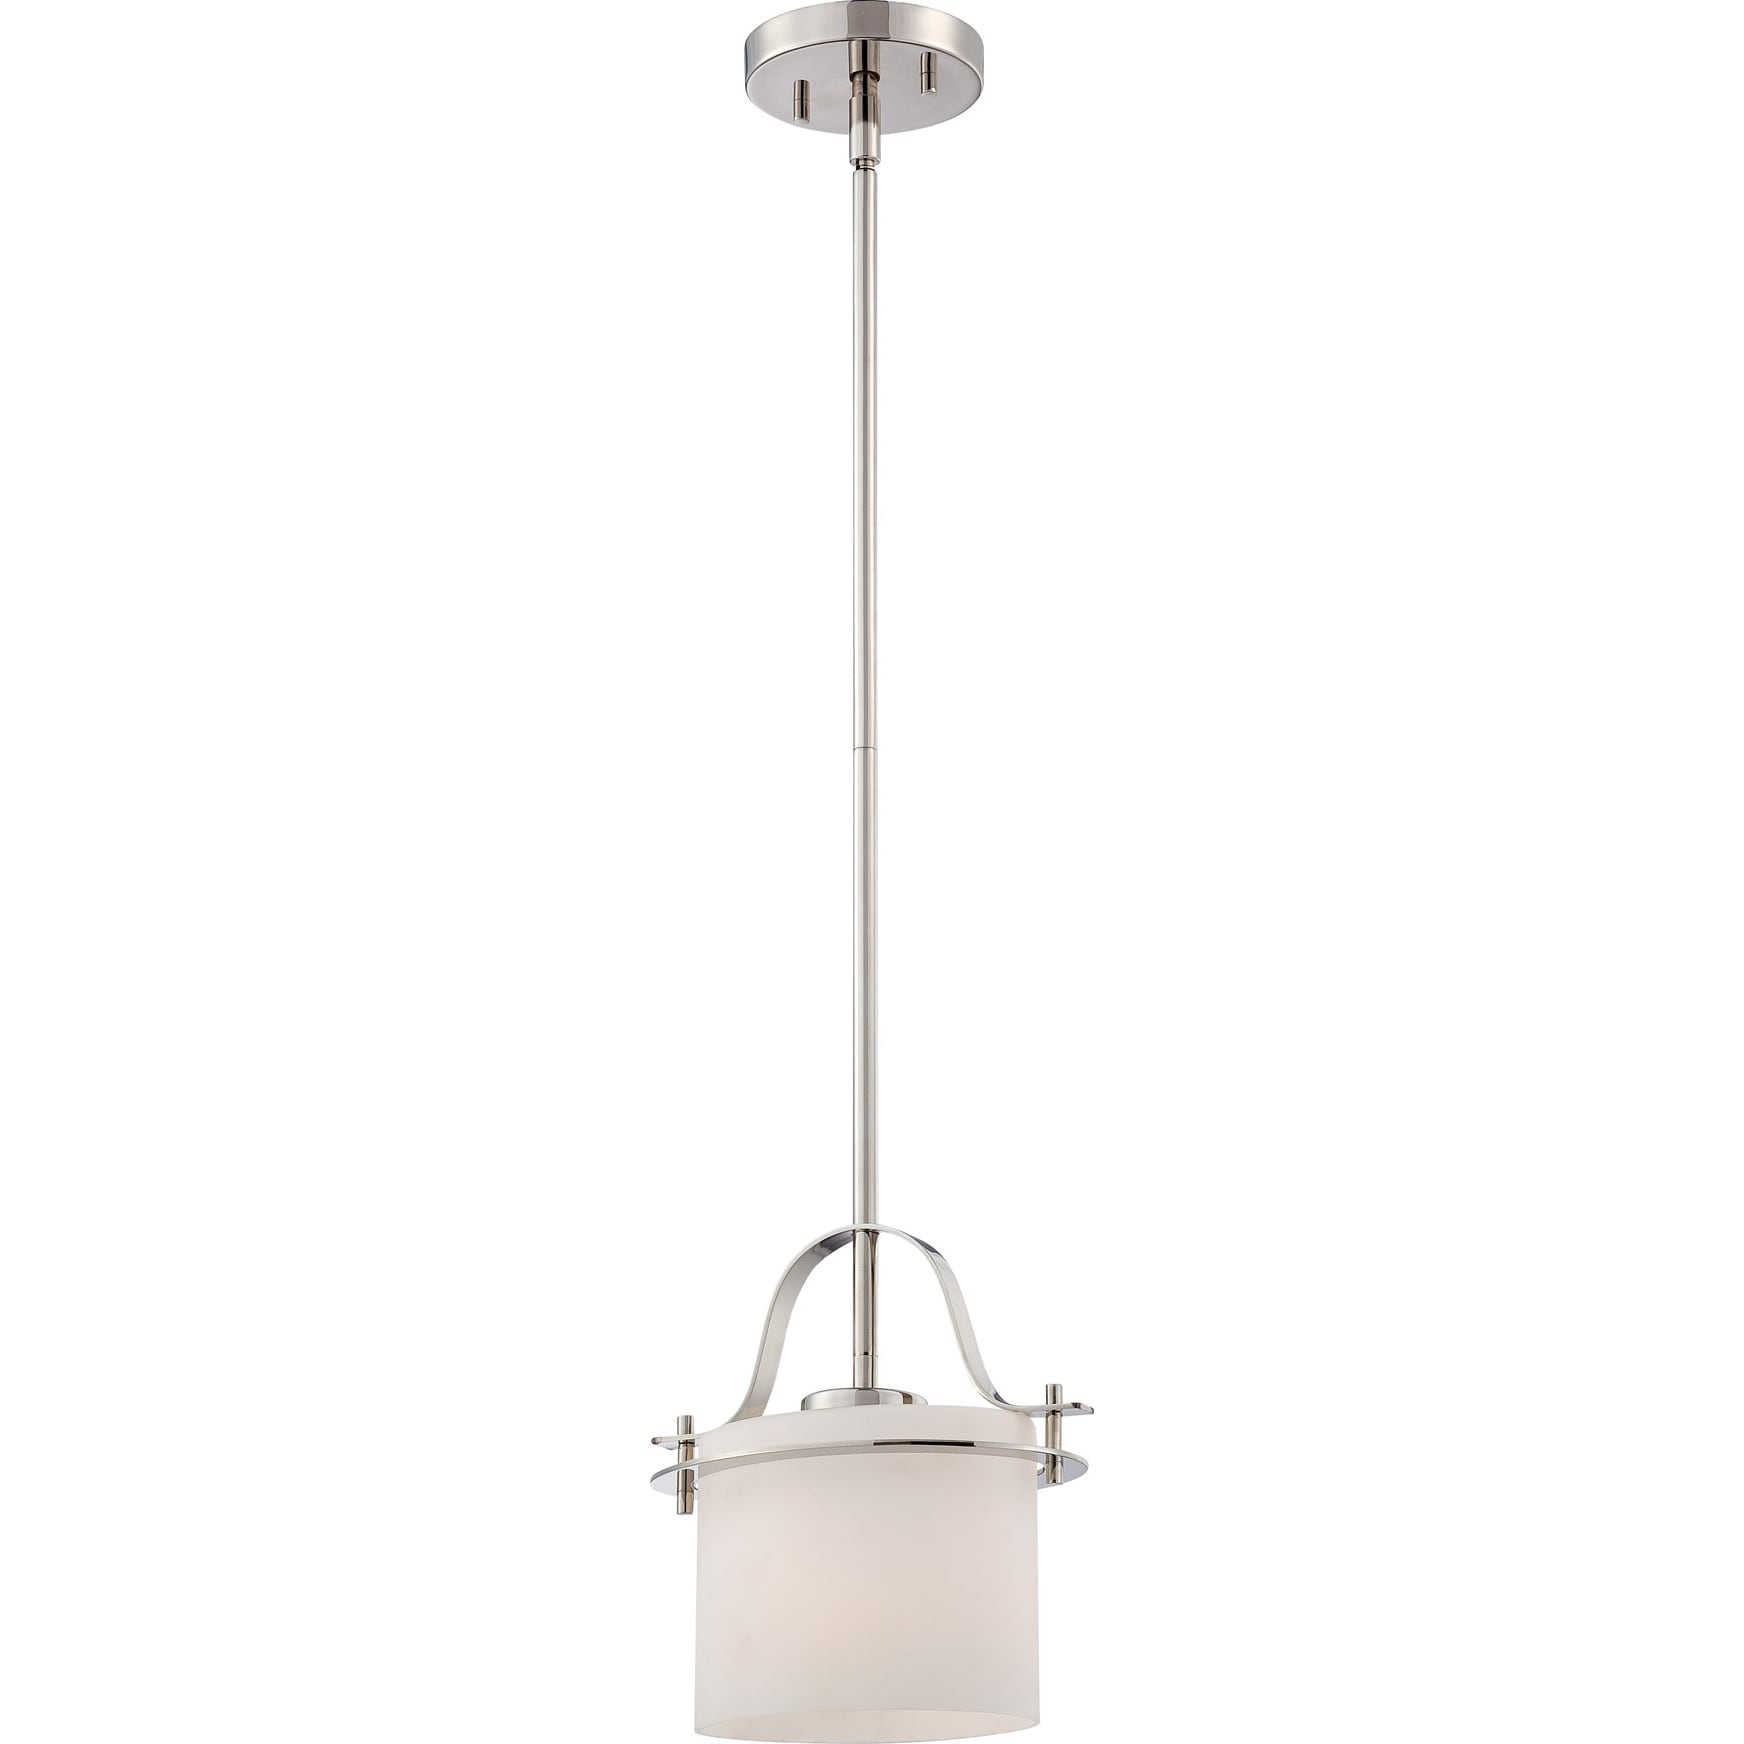 Nuvo Loren 1-light Polished Nickel Mini Pendant